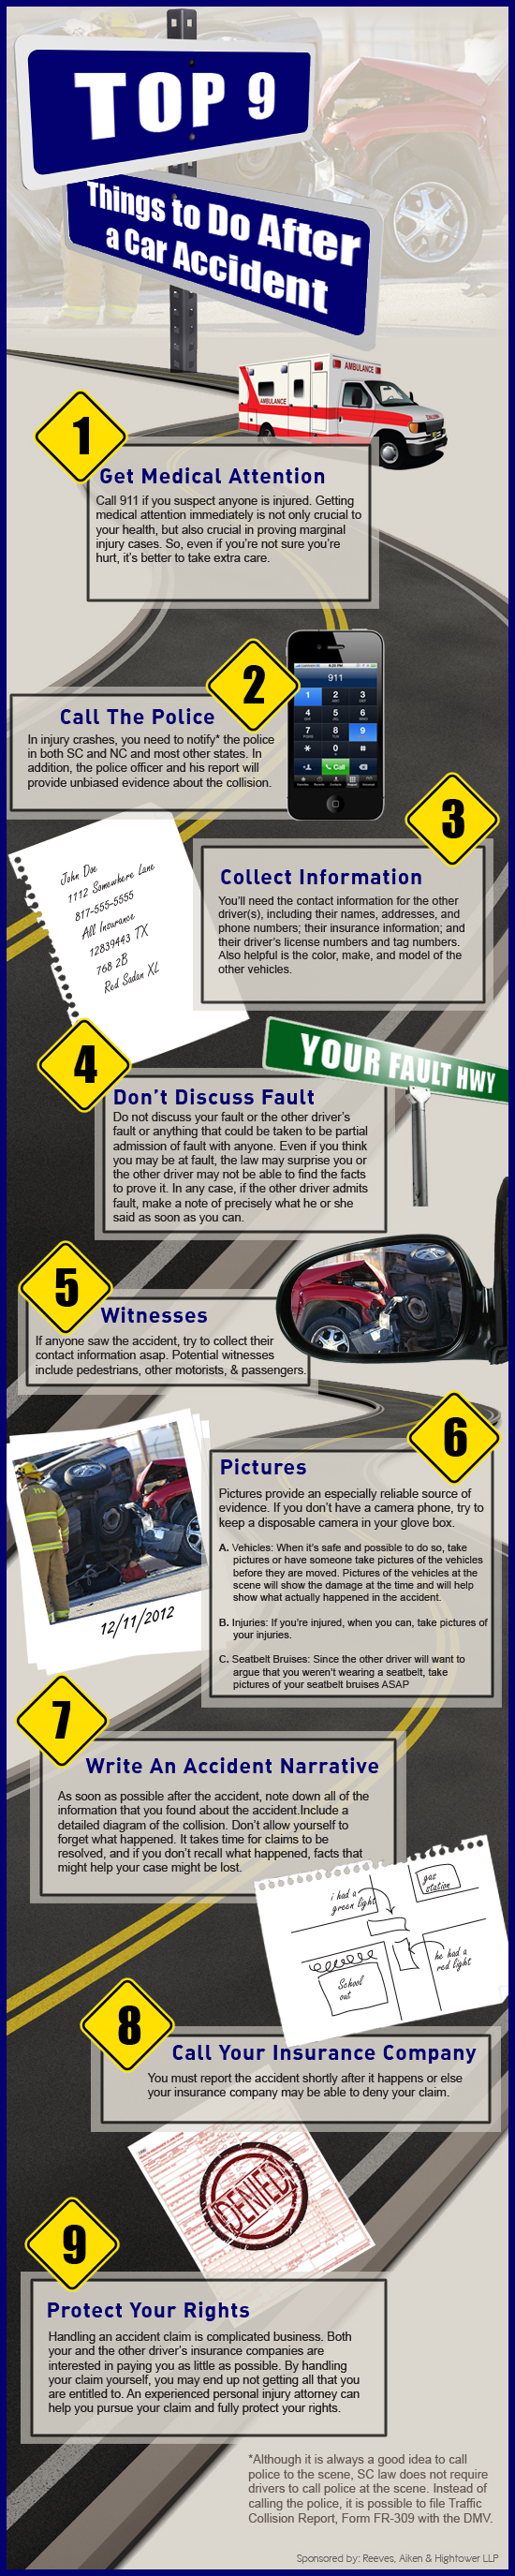 Top 9 Things to Do After a Car Accident